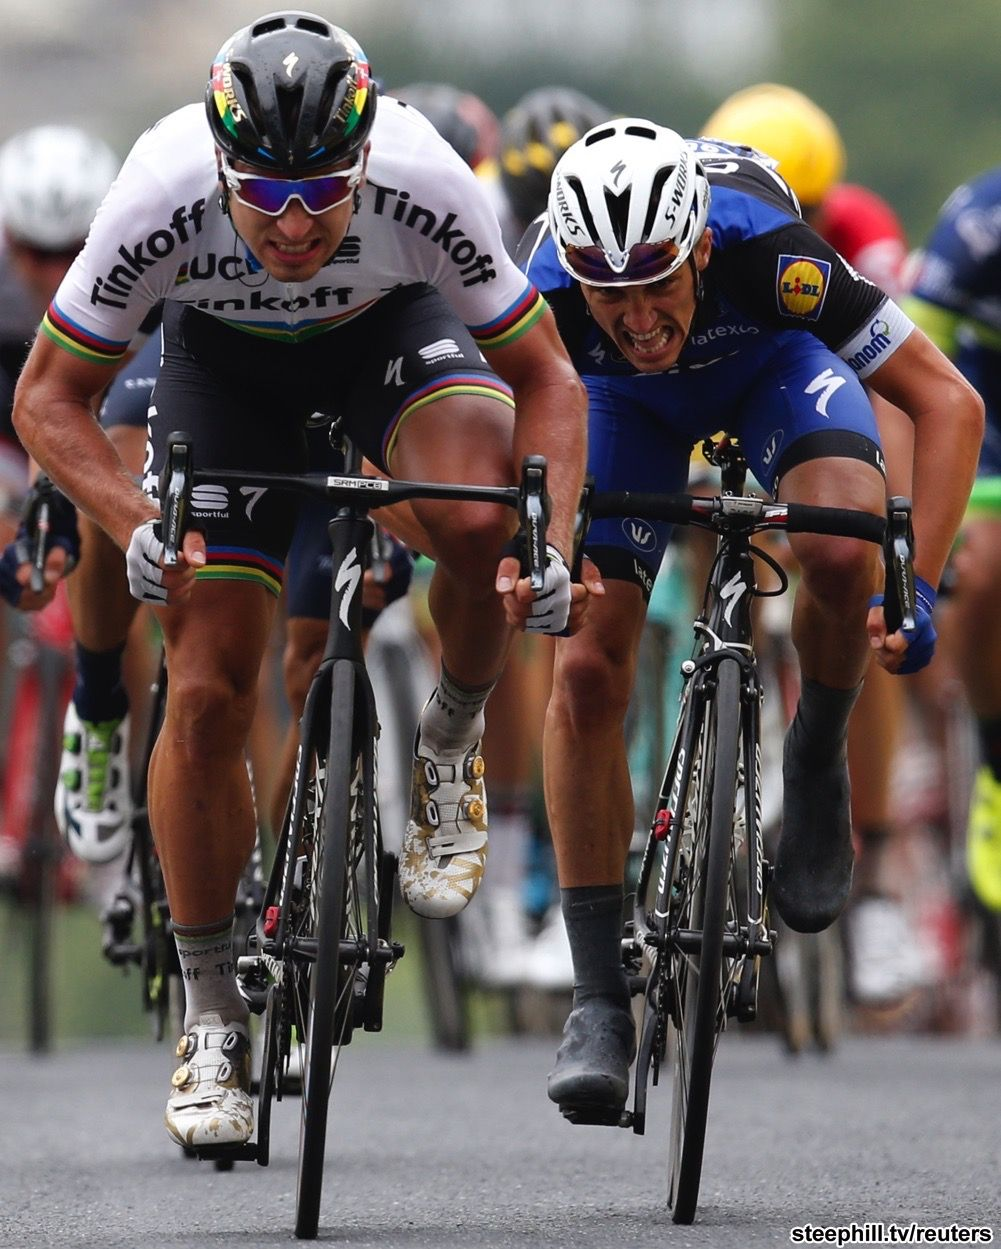 2016 Tour De France Photos Stage 02 Road Cycling Cycling Race Road Bike Cycling